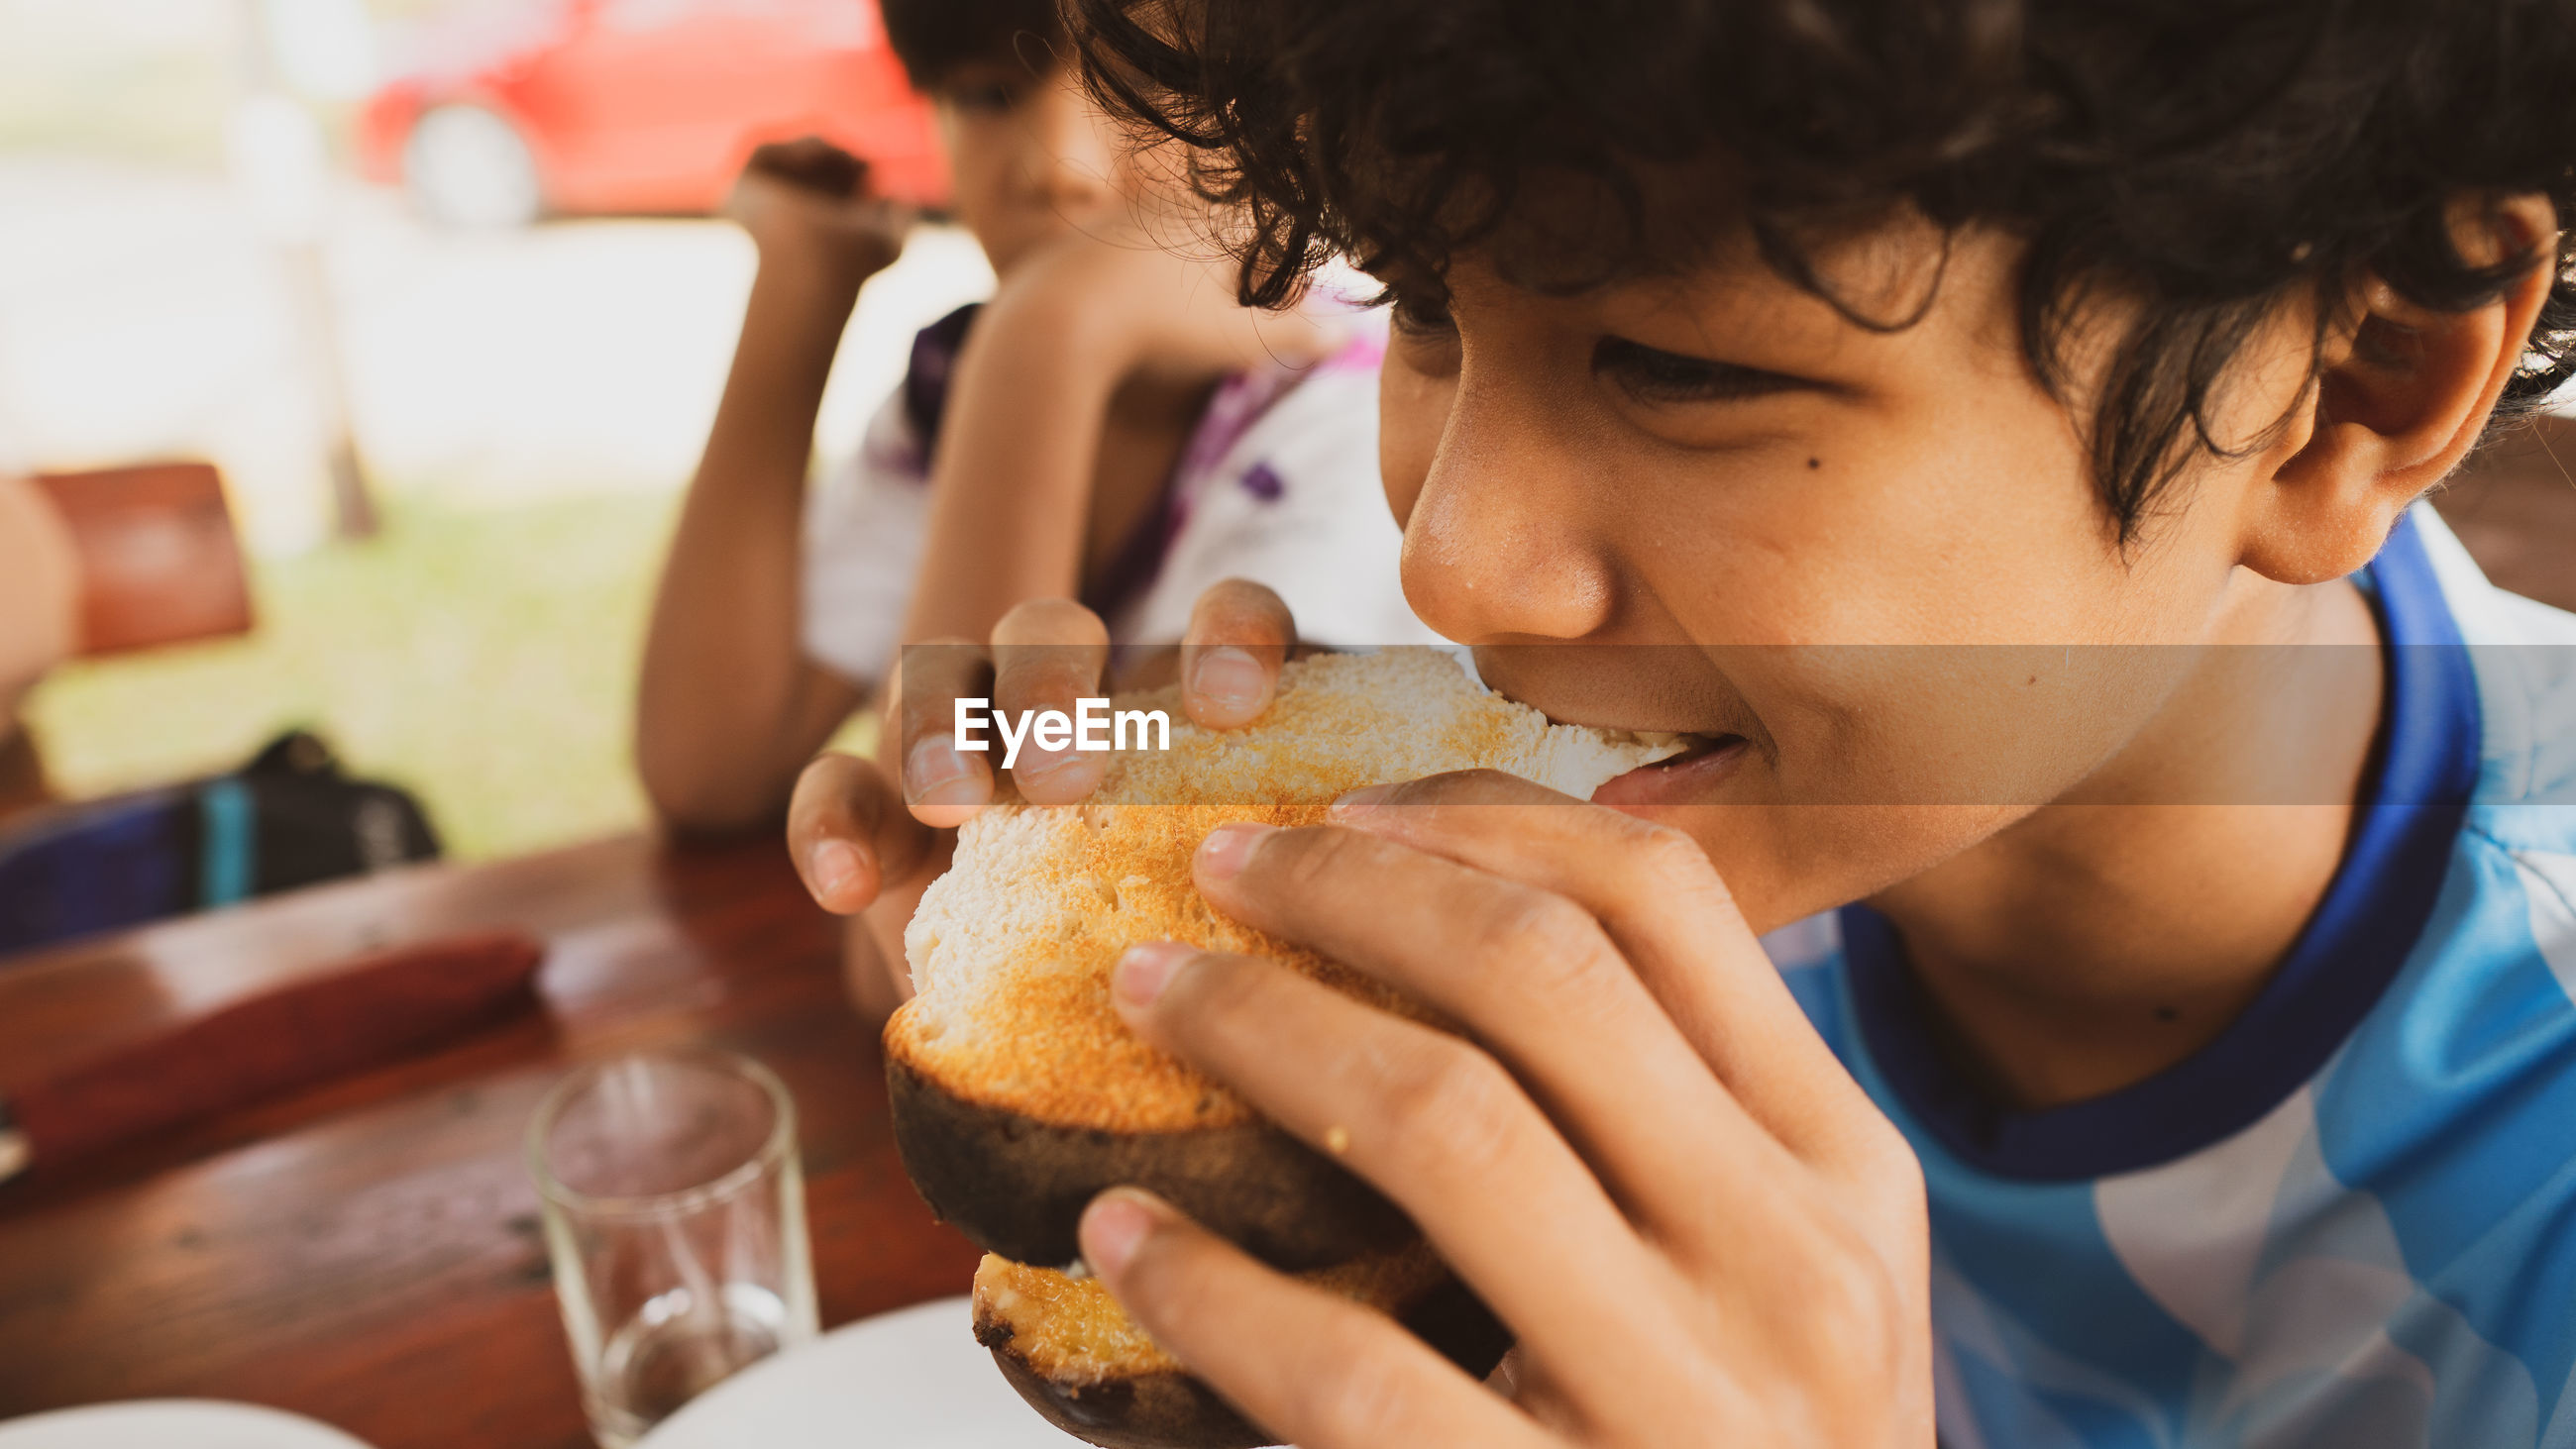 Midsection of man eating food